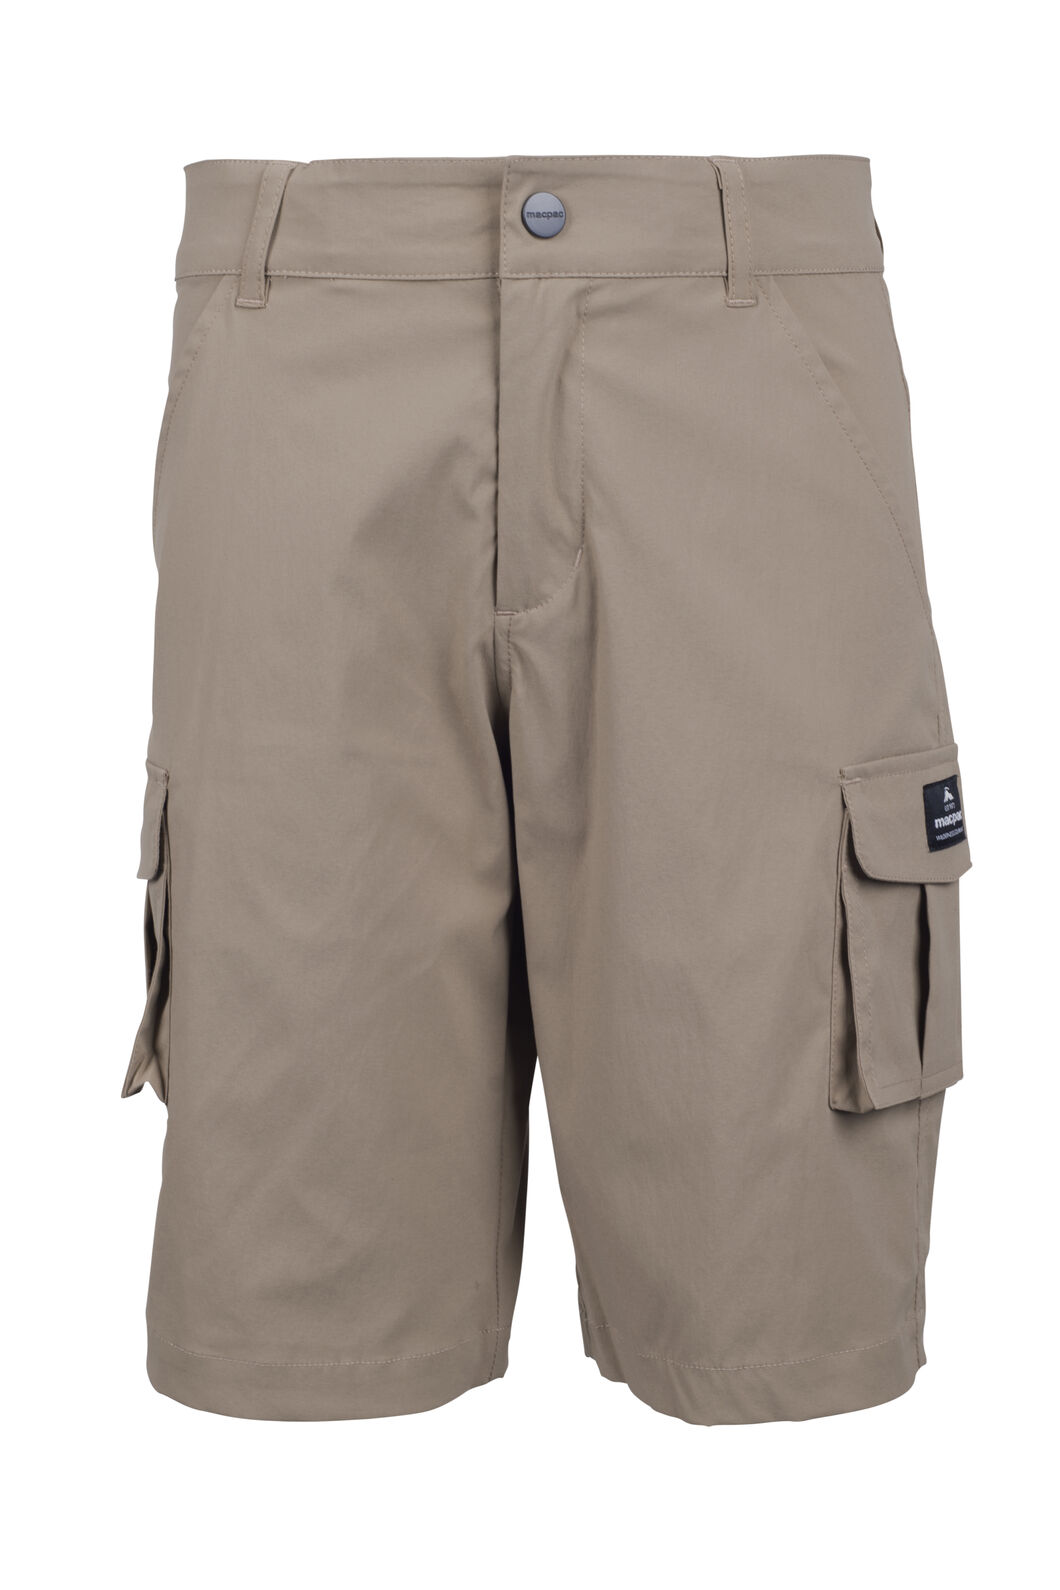 Macpac Lil Drifter Shorts - Kids', Lead Grey, hi-res